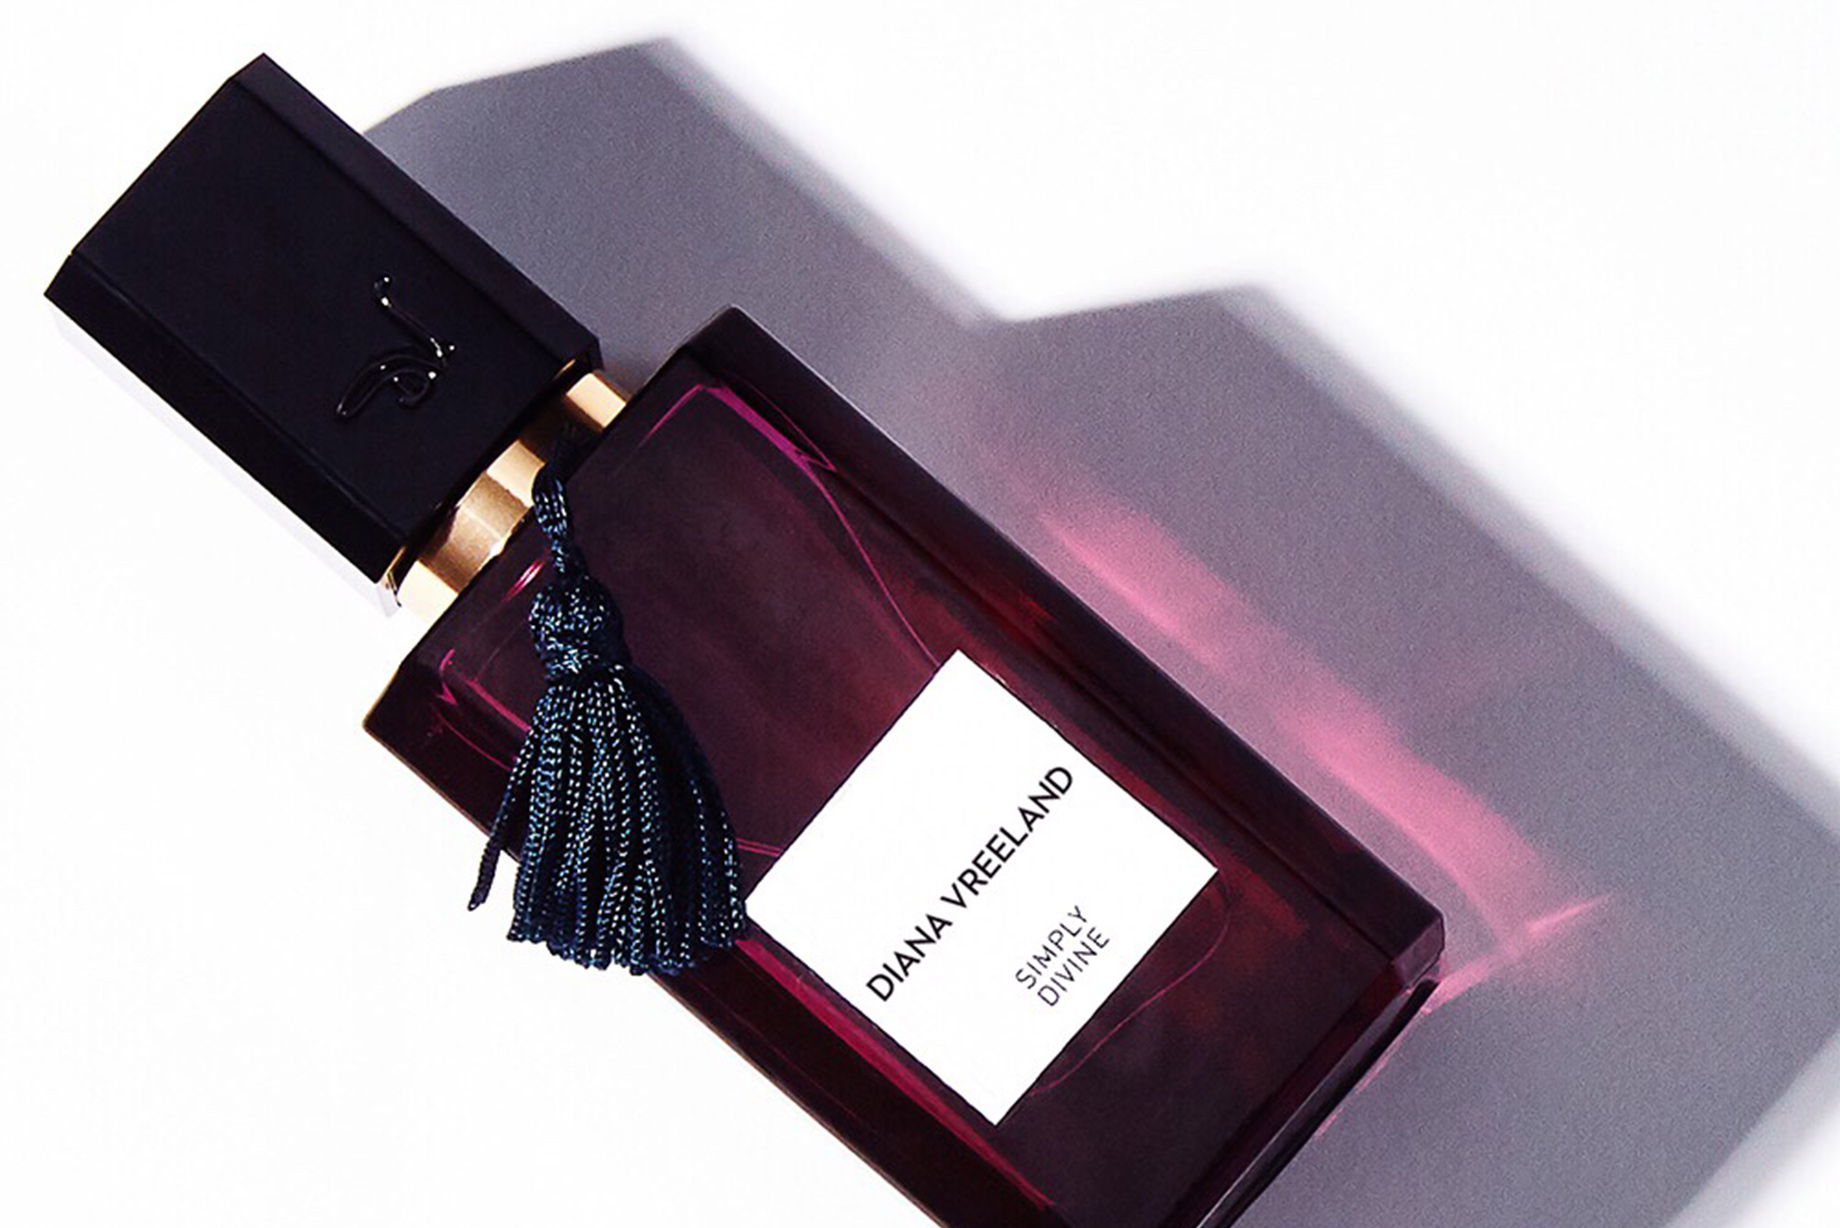 Diana Vreeland Perfume For The Most Fashionable Person On Your List